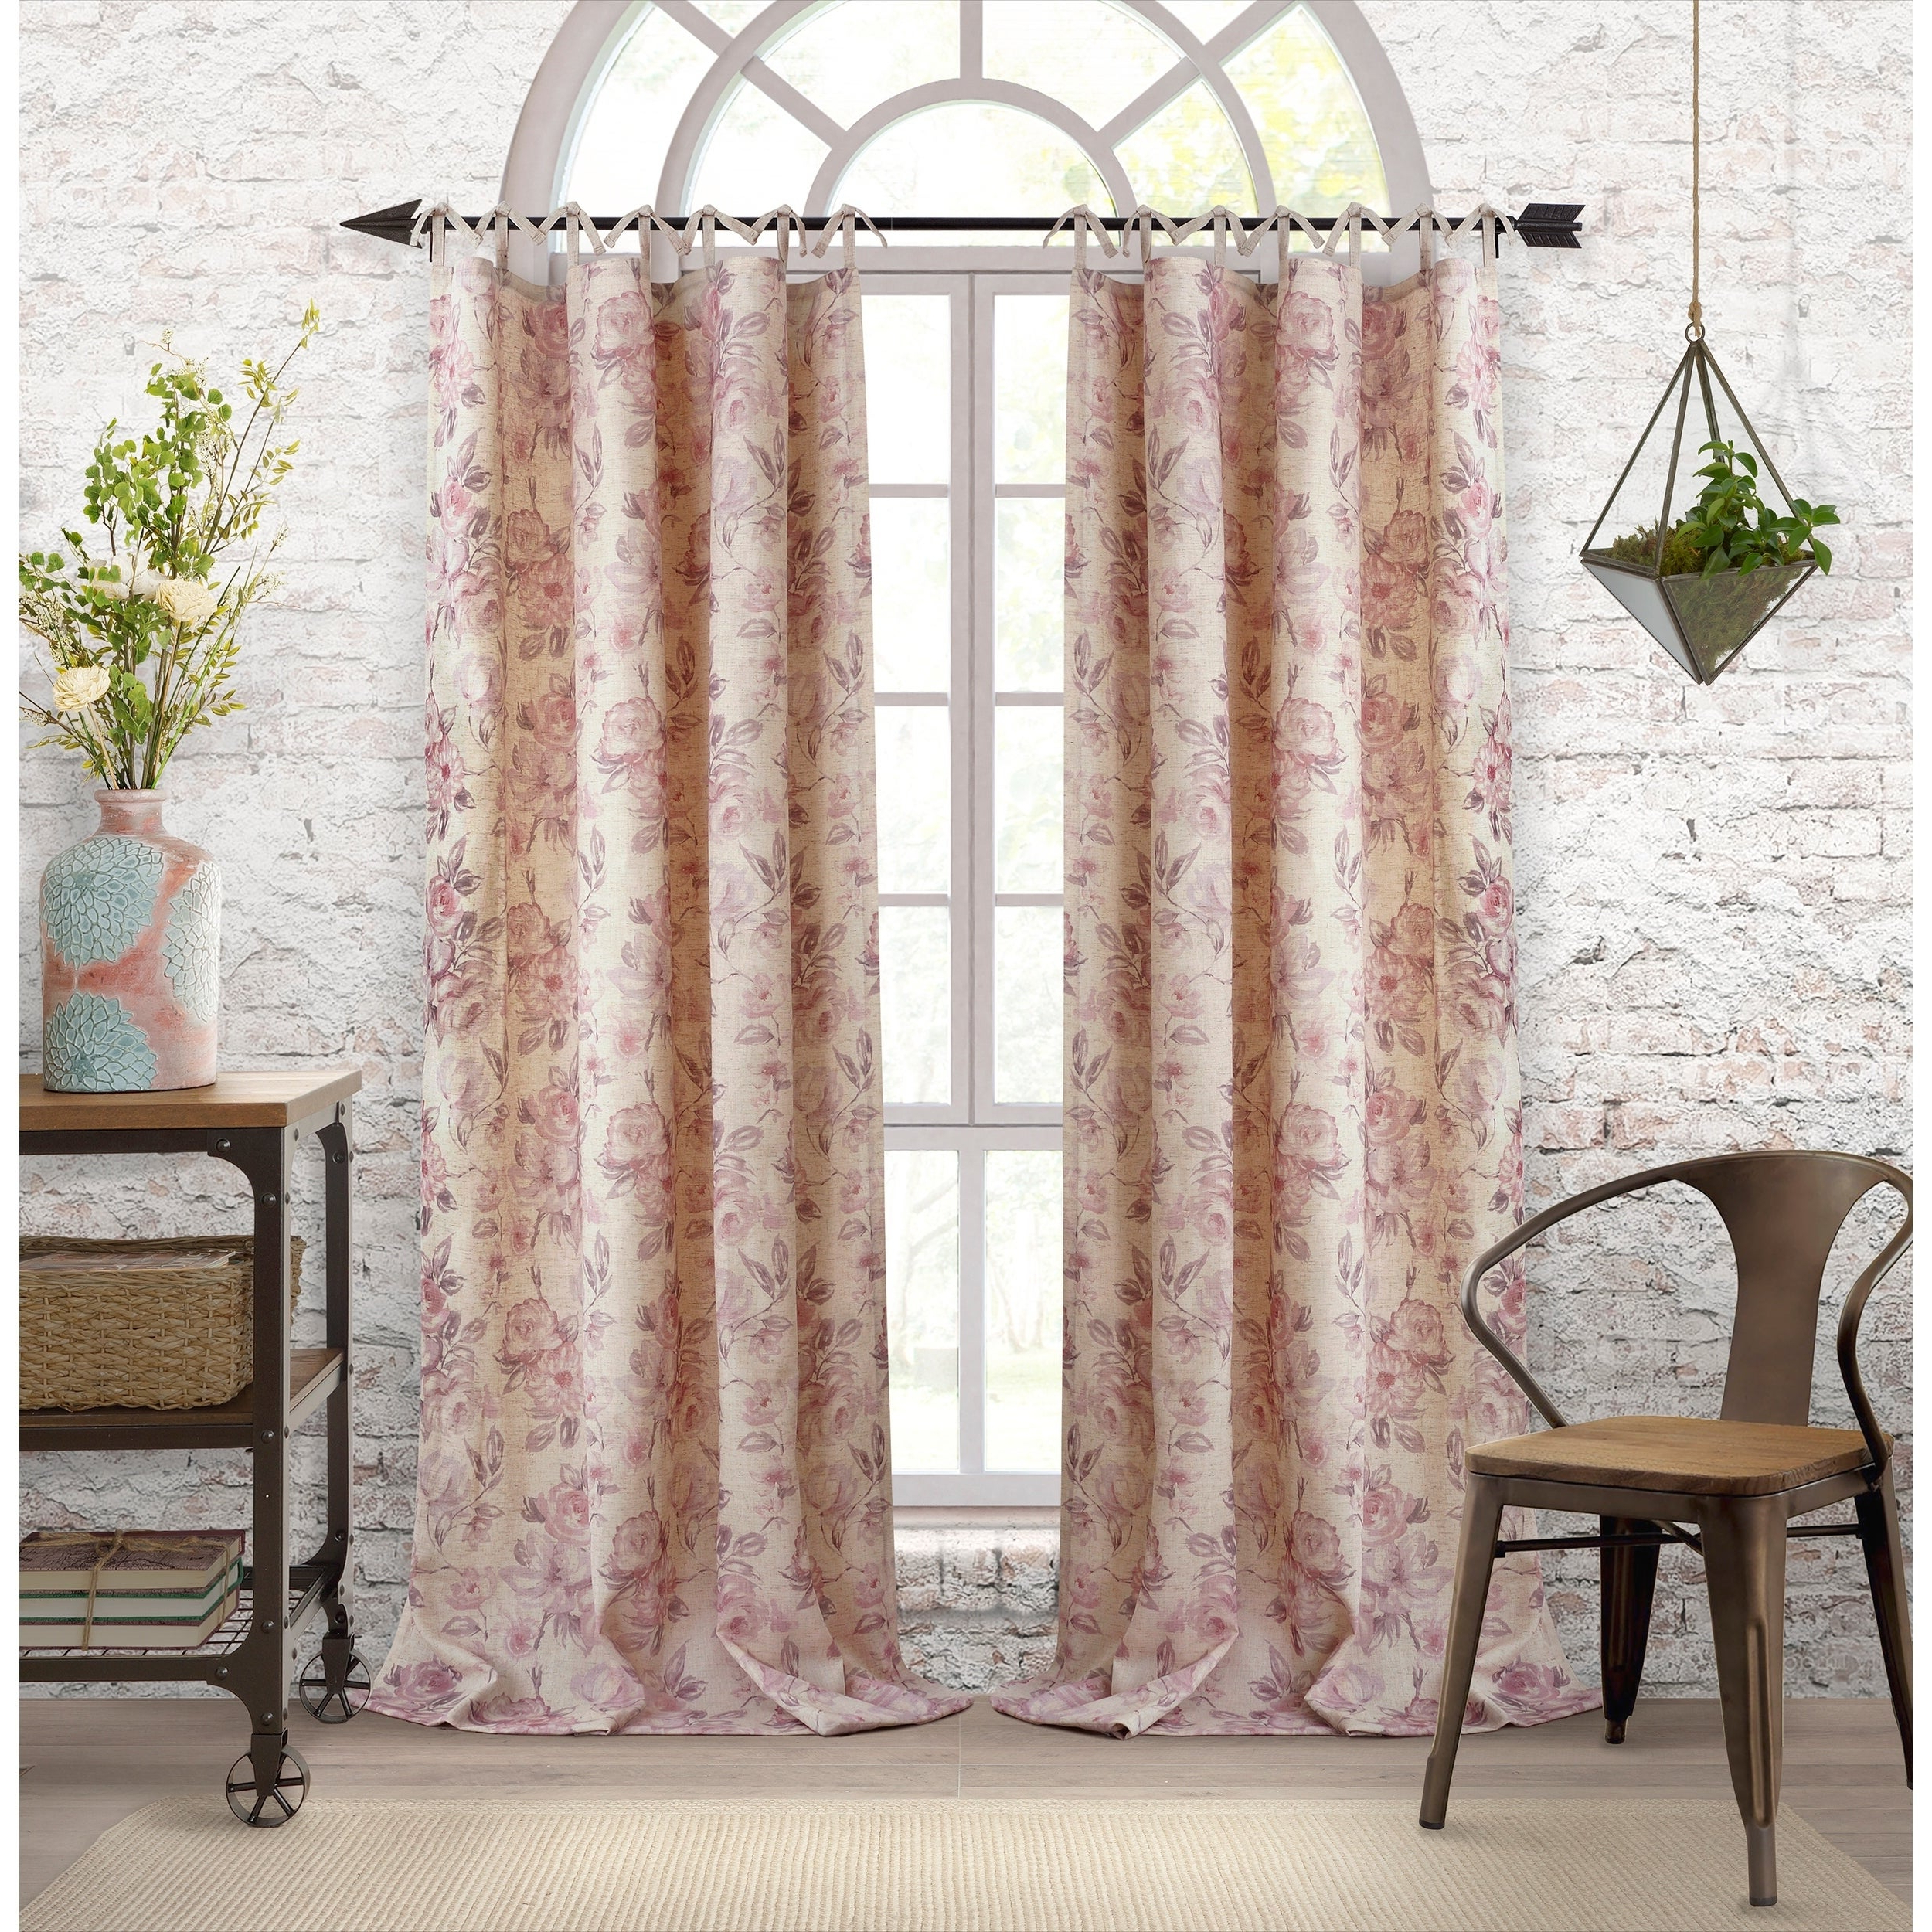 2020 Elrene Jolie Tie Top Curtain Panels With Elrene Annalise Floral Linen Tie Top Window Curtain (View 10 of 20)